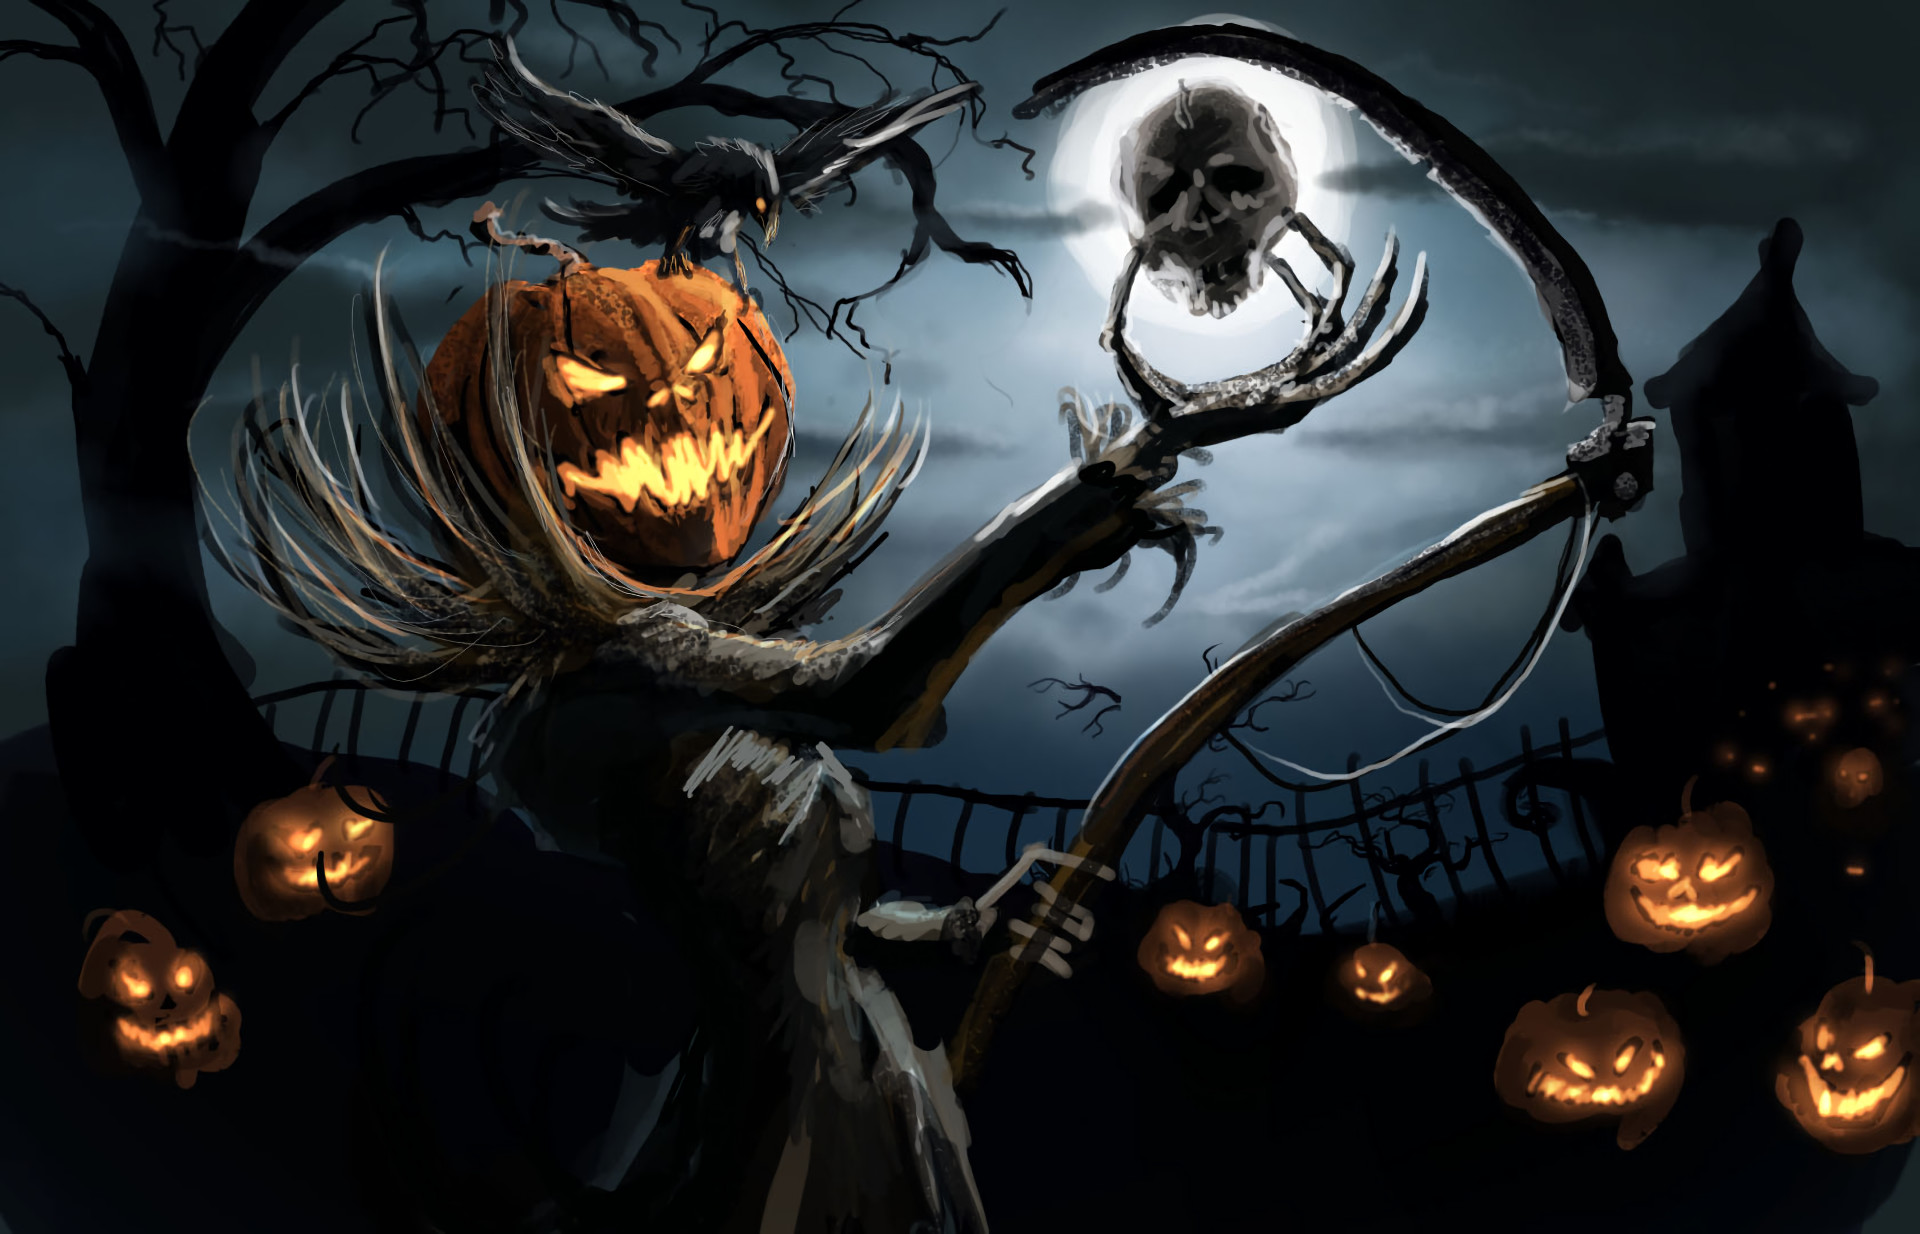 Res: 1920x1234, HD Wallpaper | Background Image ID:747026.  Holiday Halloween